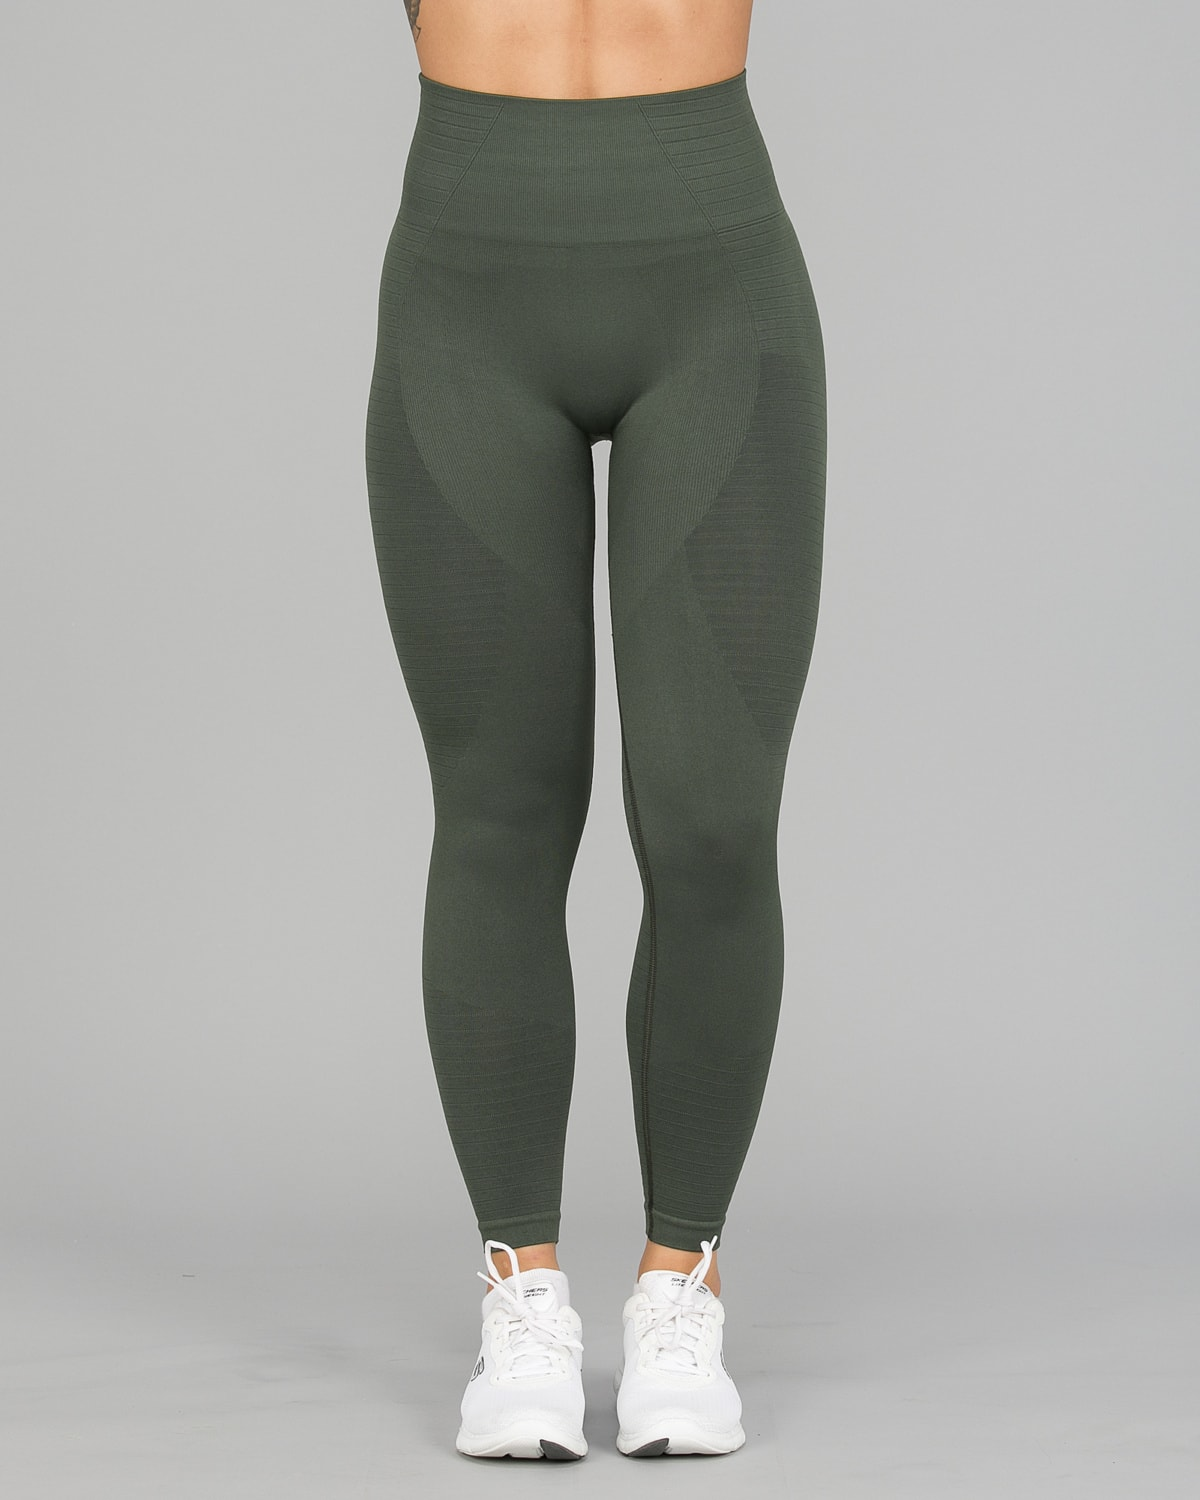 Jerf Gela 2.0 tights dark green1